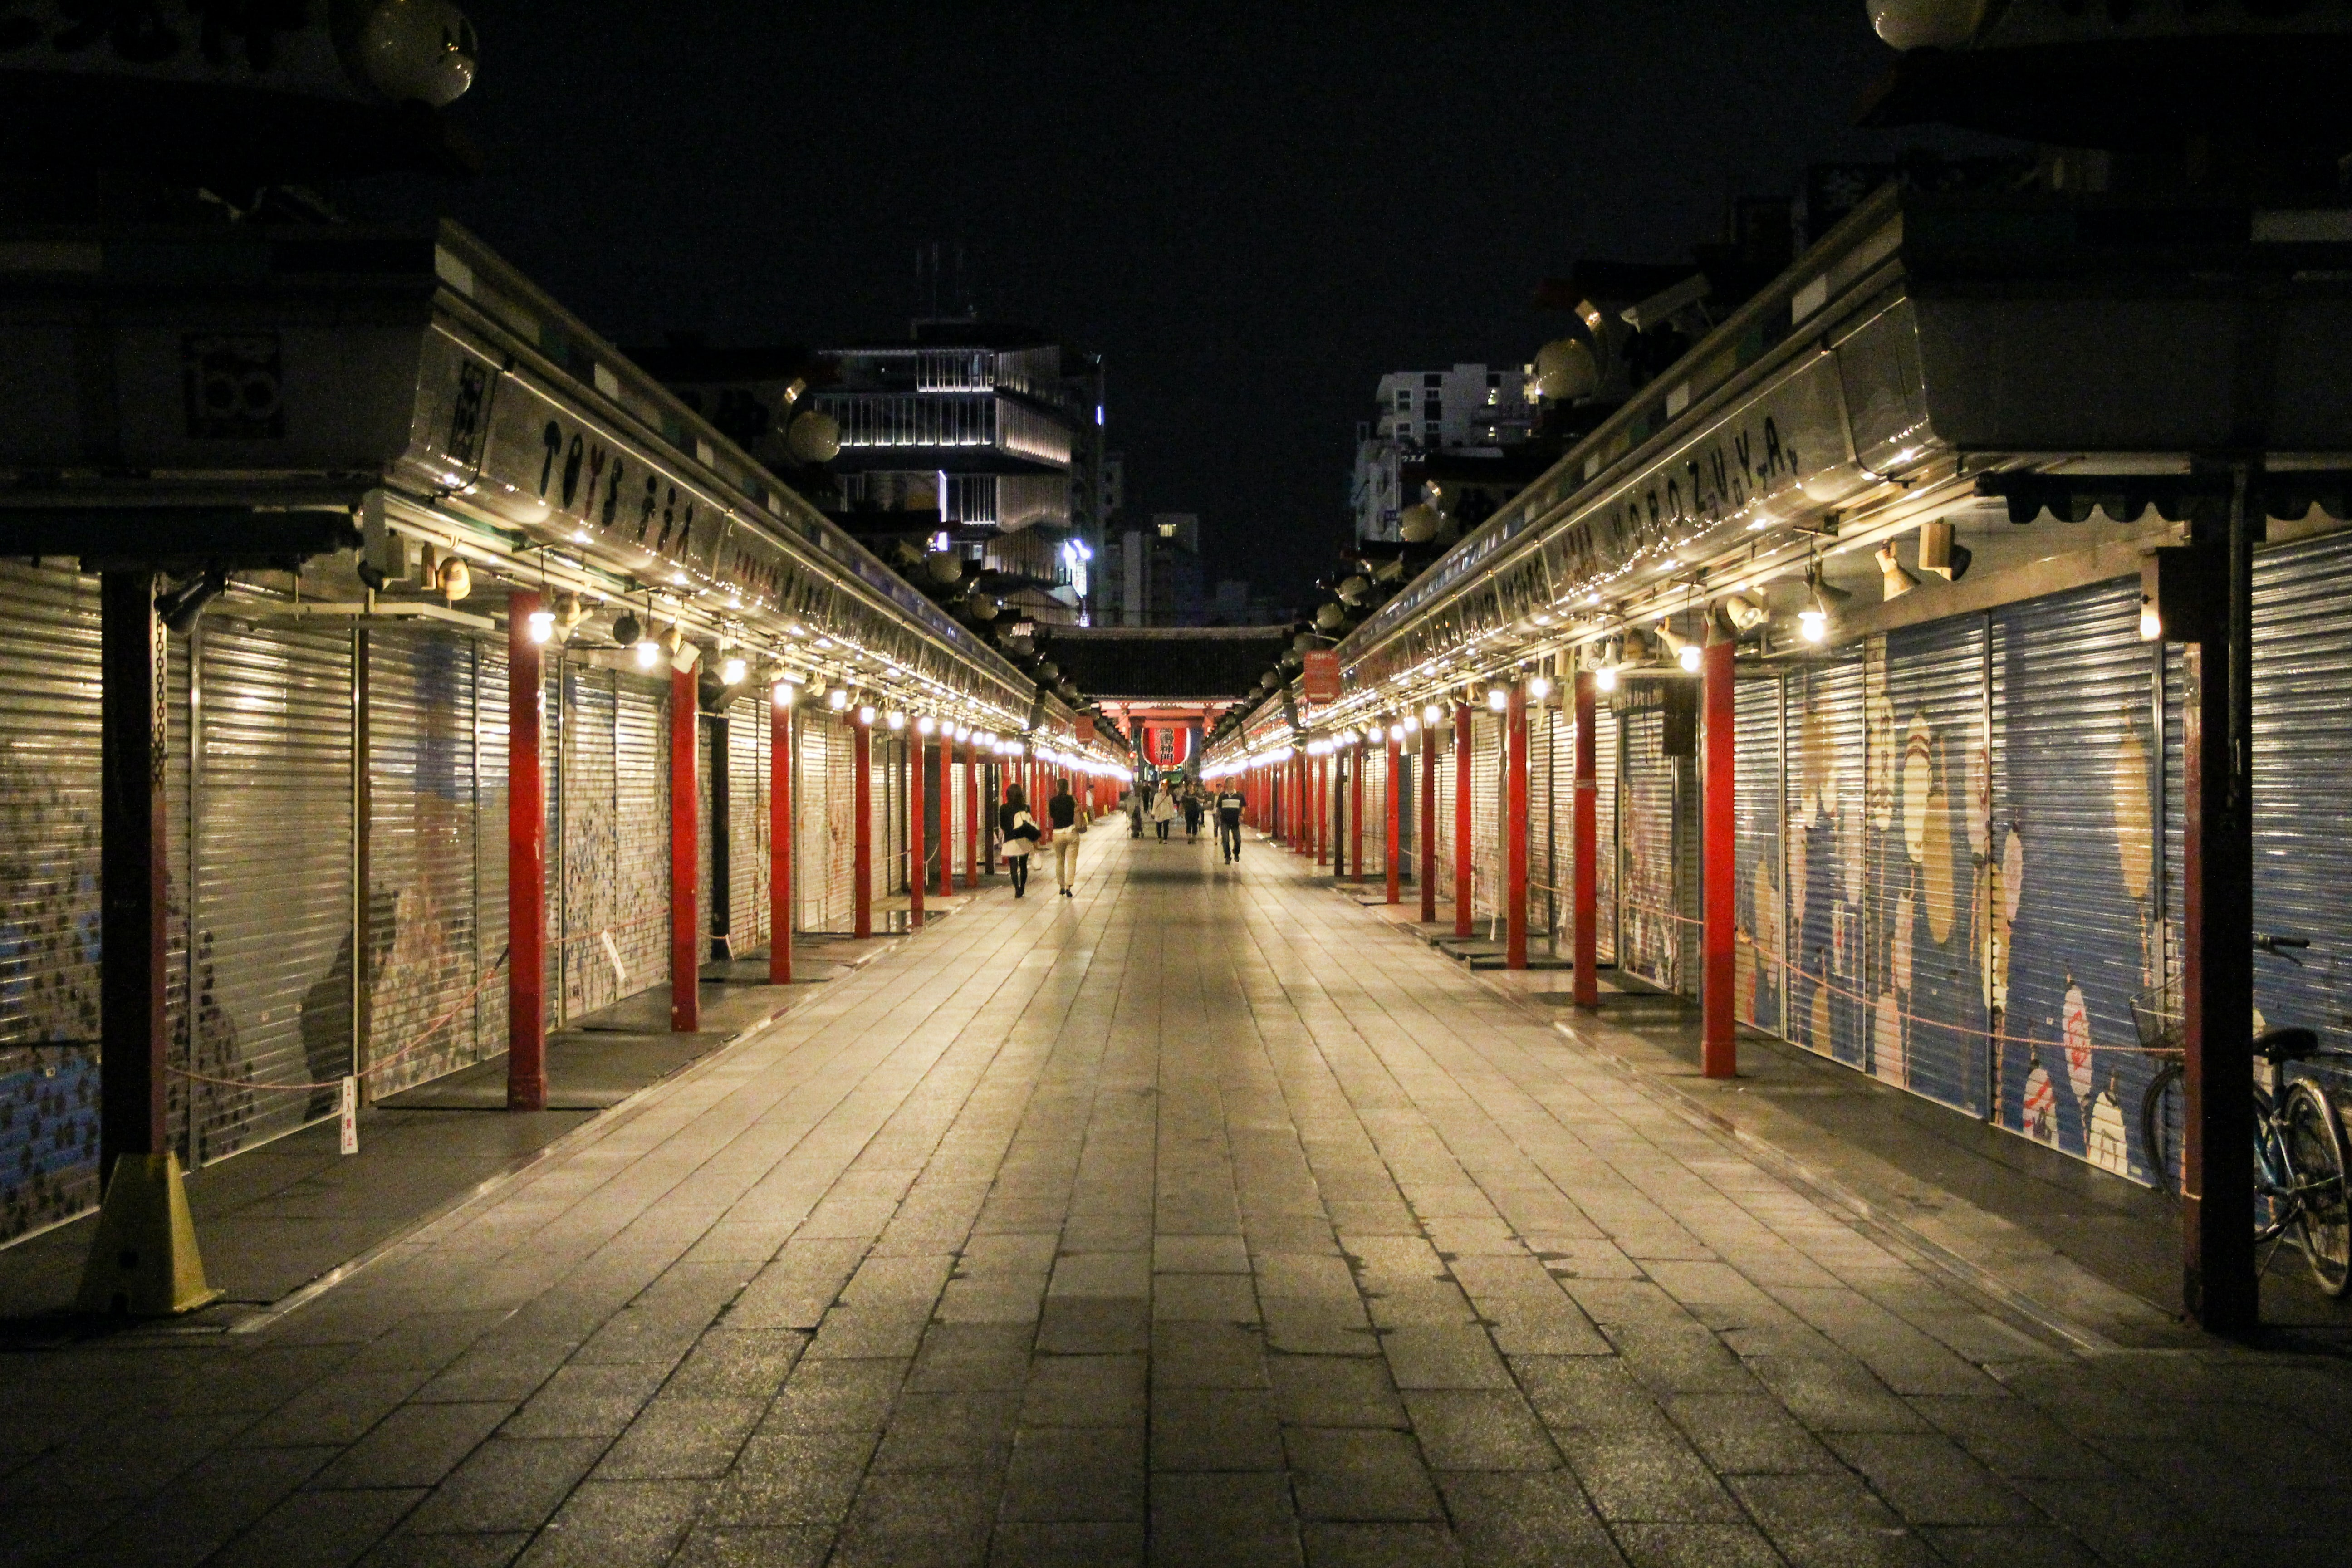 empty pathway beside stores with roll top doors at night time